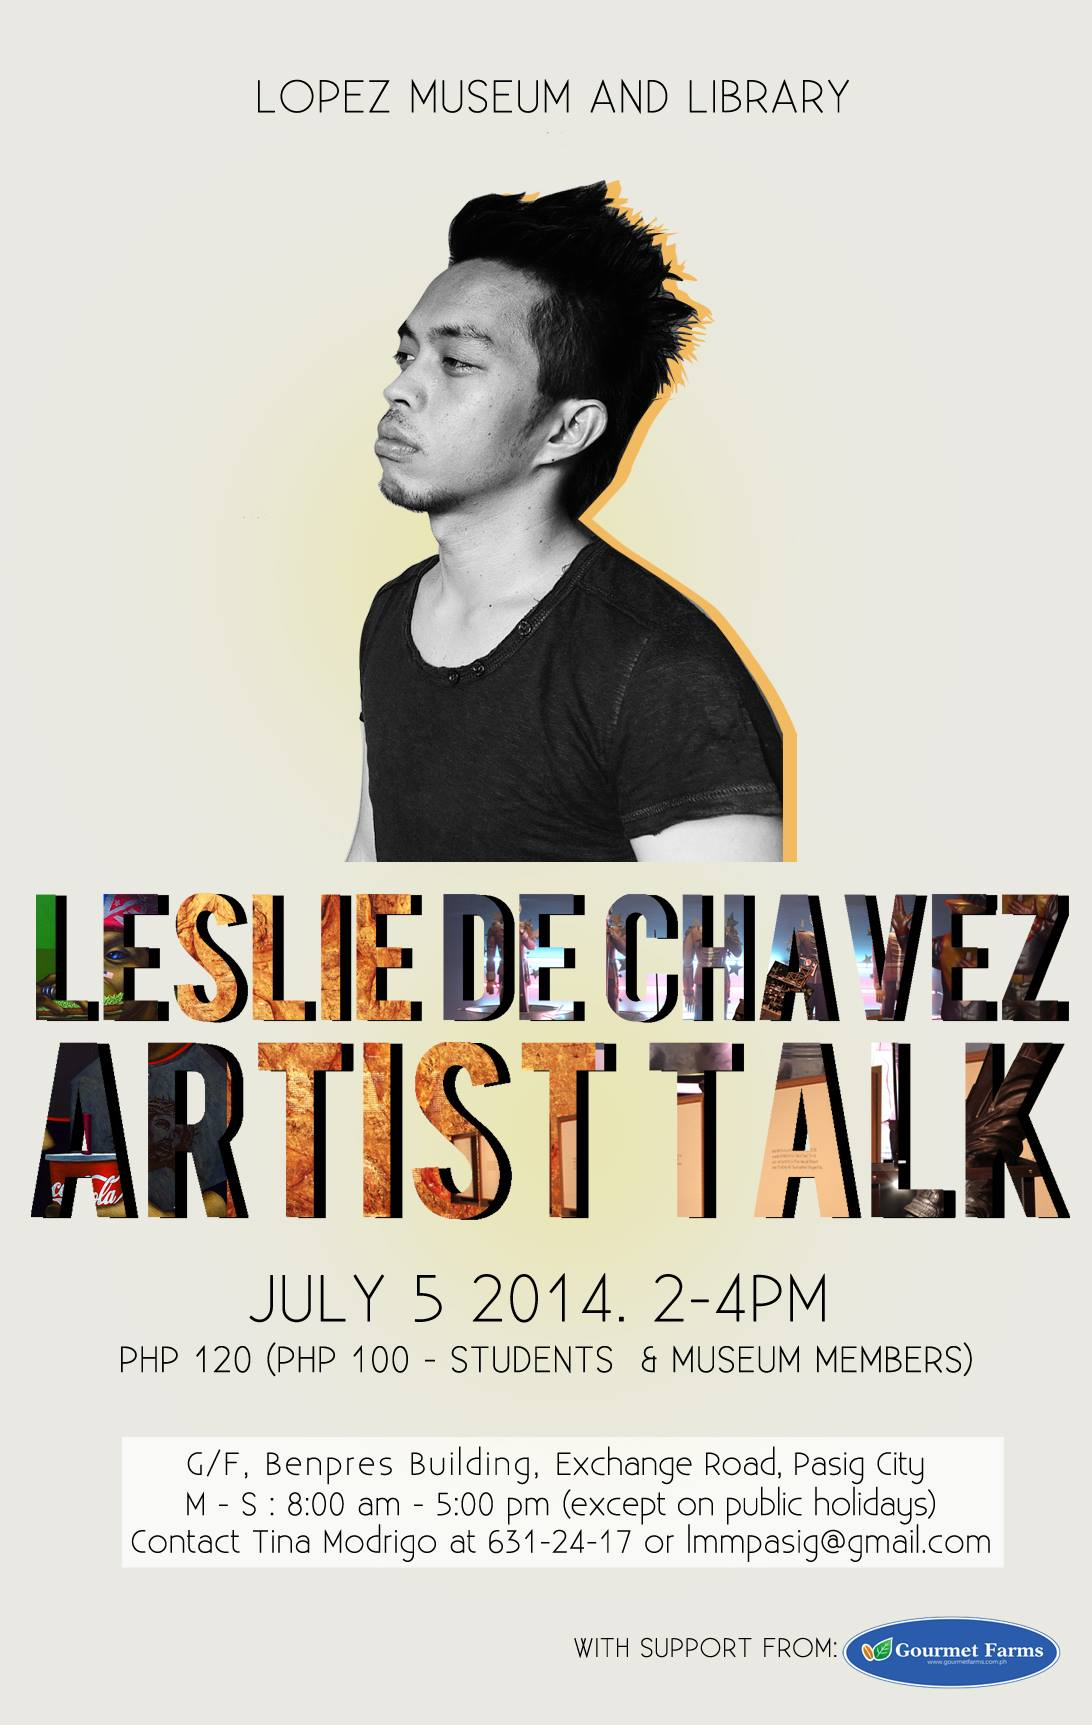 Leslie de Chavez's Artist Talk on 5 July for Complicated Exhibit